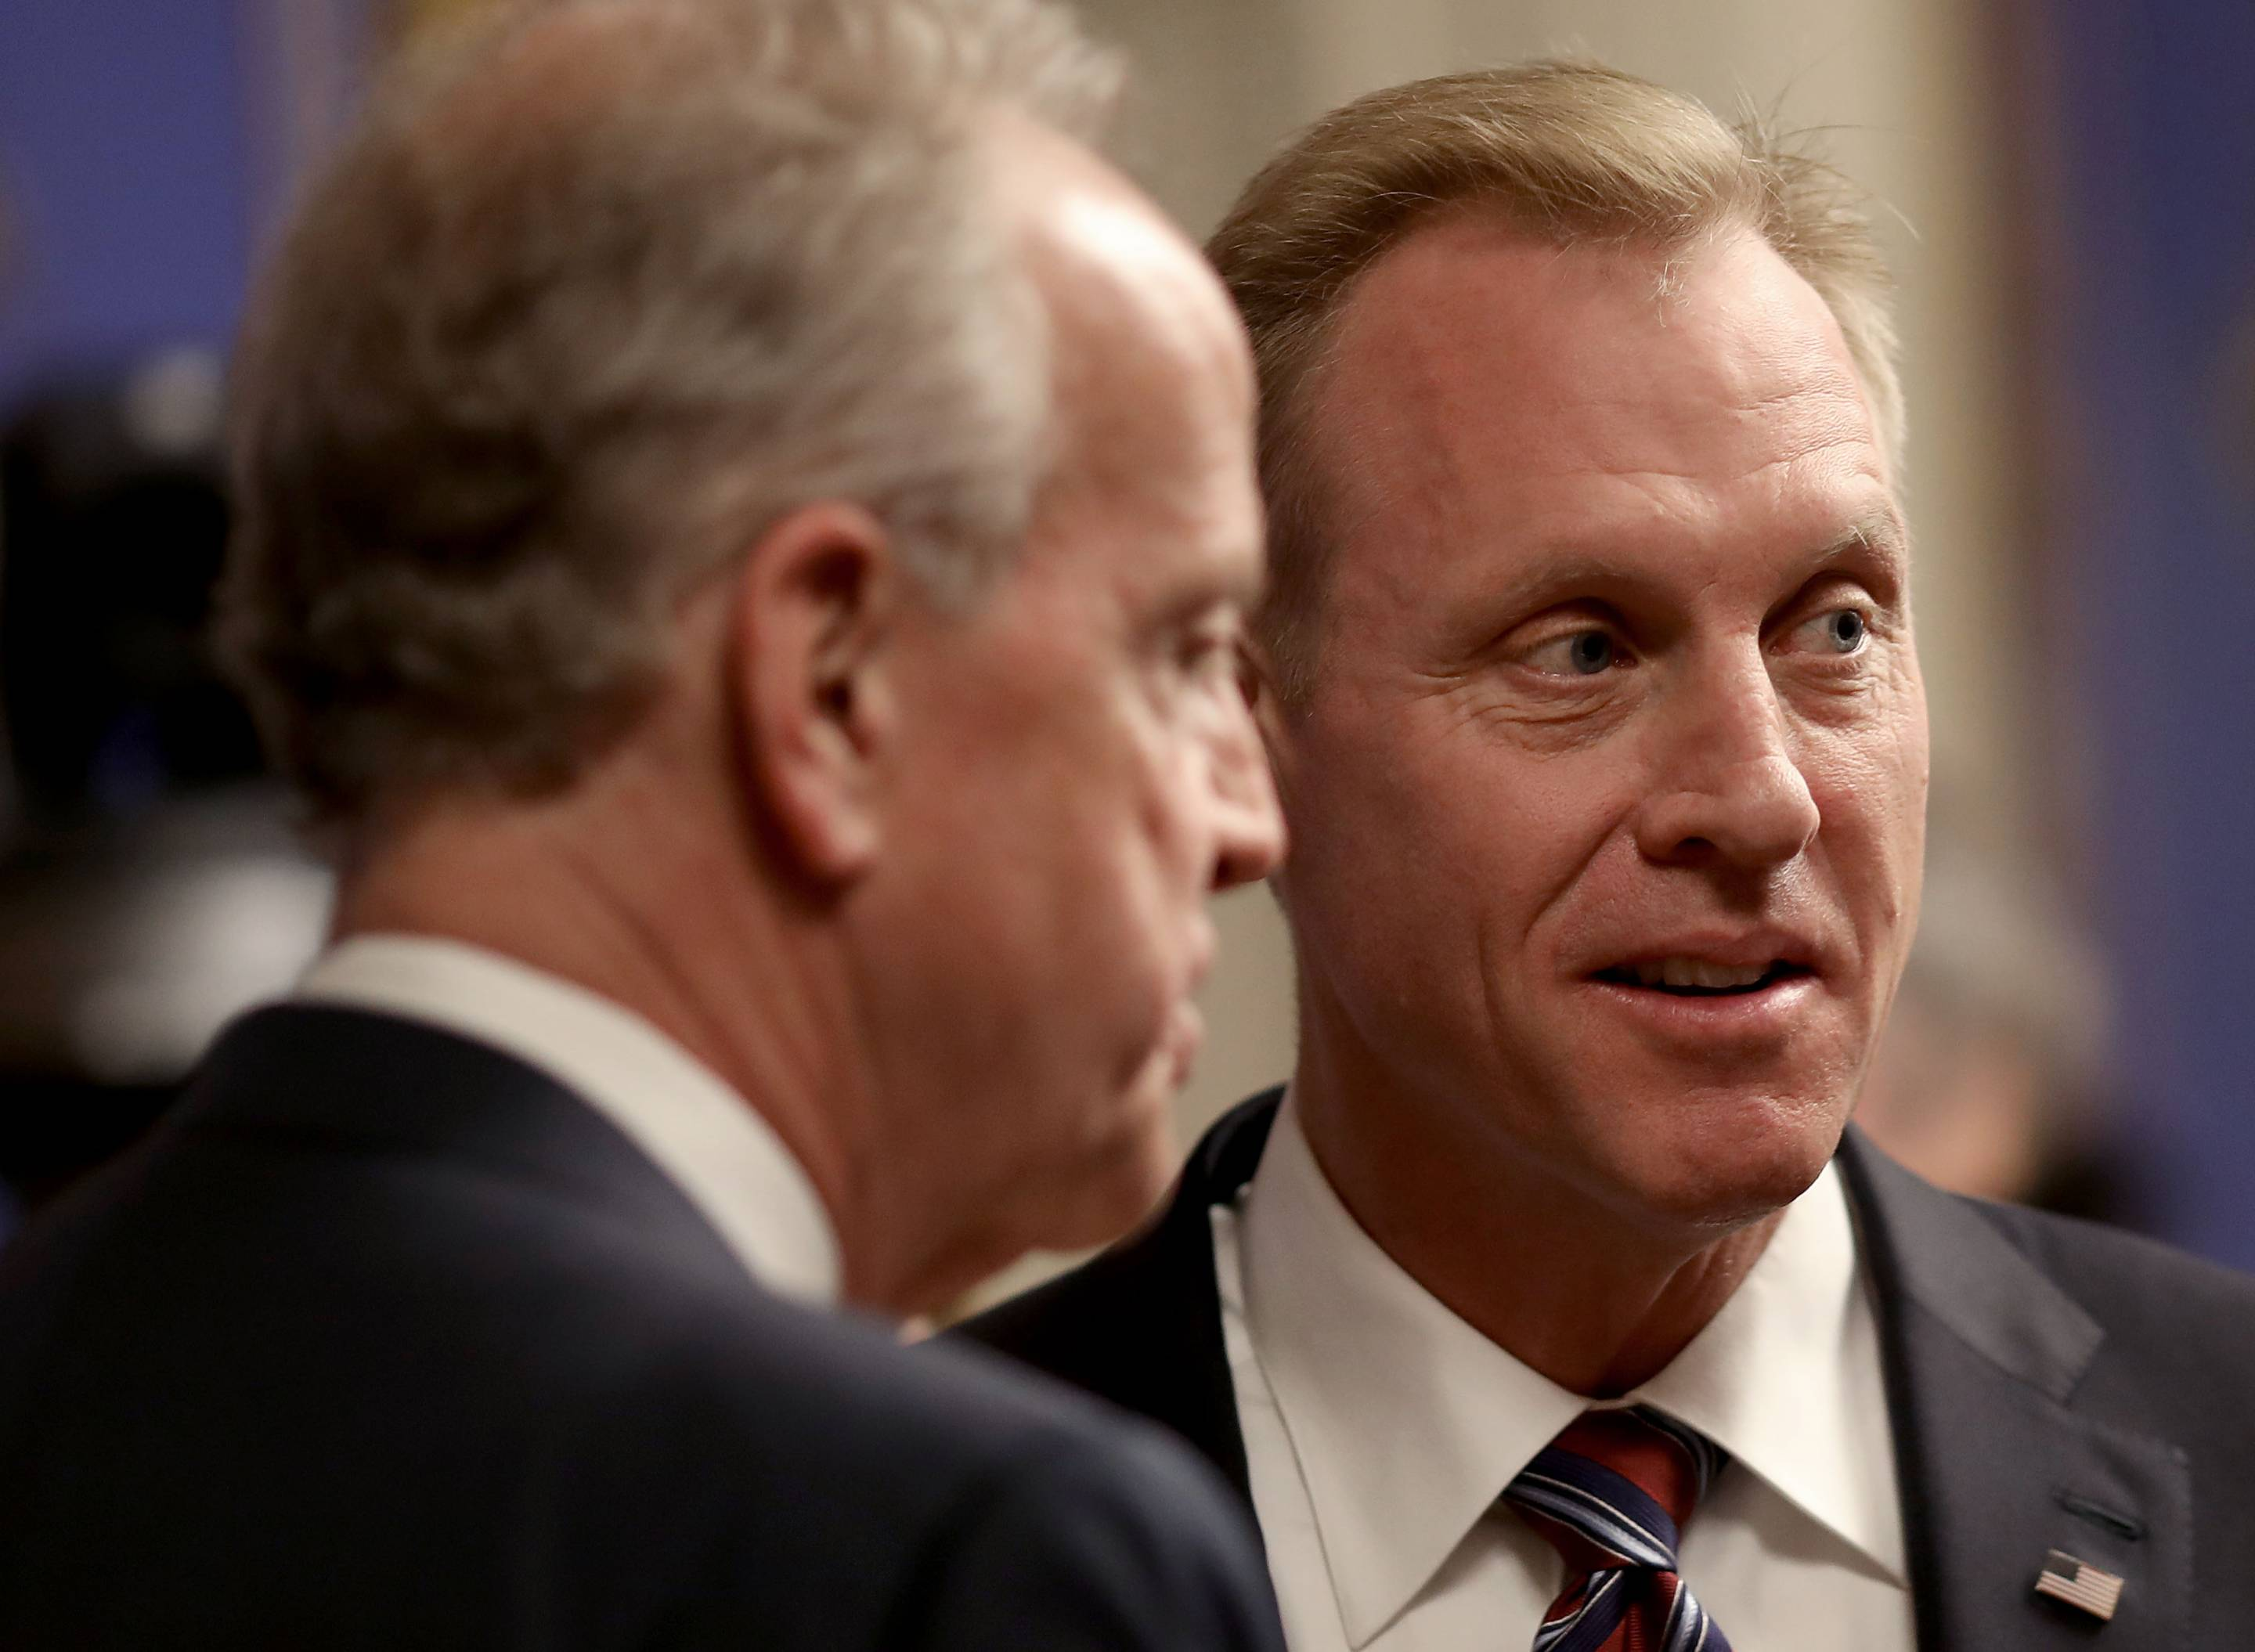 Acting Defense Secretary Shanahan And Joint Chiefs Of Staff Chairman Gen. Dunford Testify Before Senate Appropriations Committee